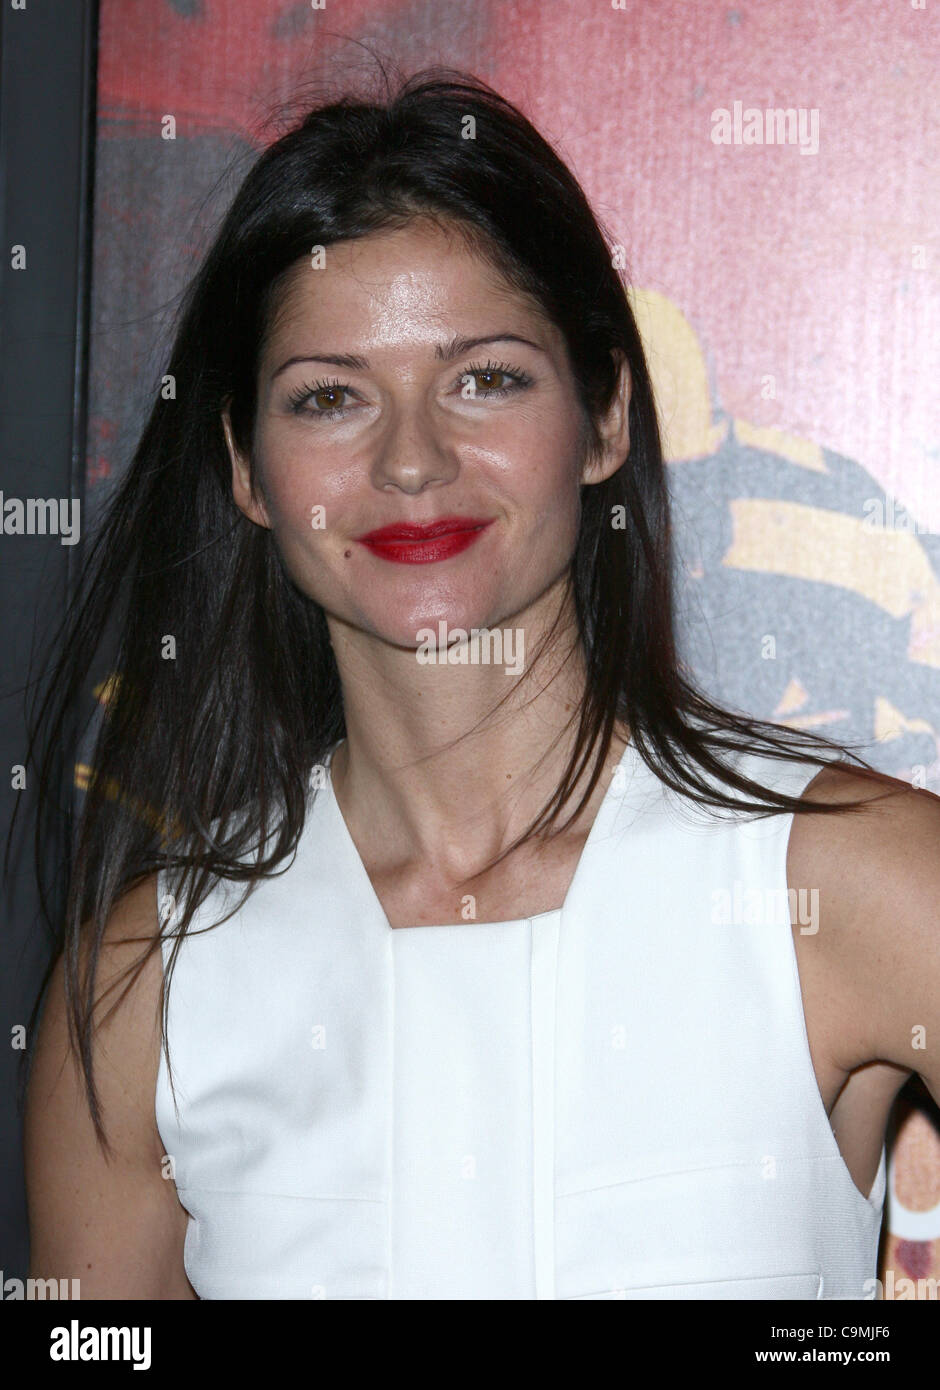 jill hennessay gallery Find bio, credits and filmography information for jill hennessy on allmovie - from busking to blockbusters to small-screen crime drama, worldly actress jill hennessey has proven&hellip.